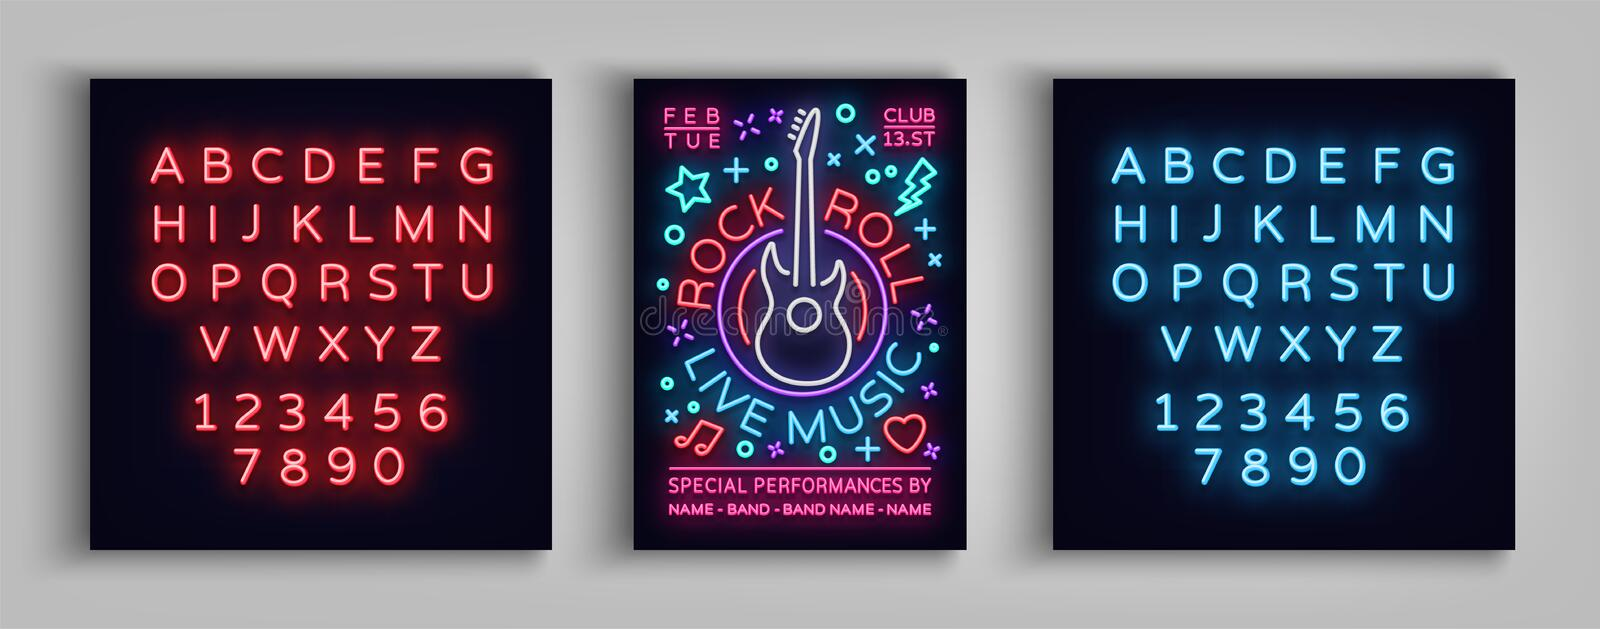 Rock n roll live music. Typography, Poster in neon style, Neon sign, Flyer Design template for rock festival, concert royalty free illustration